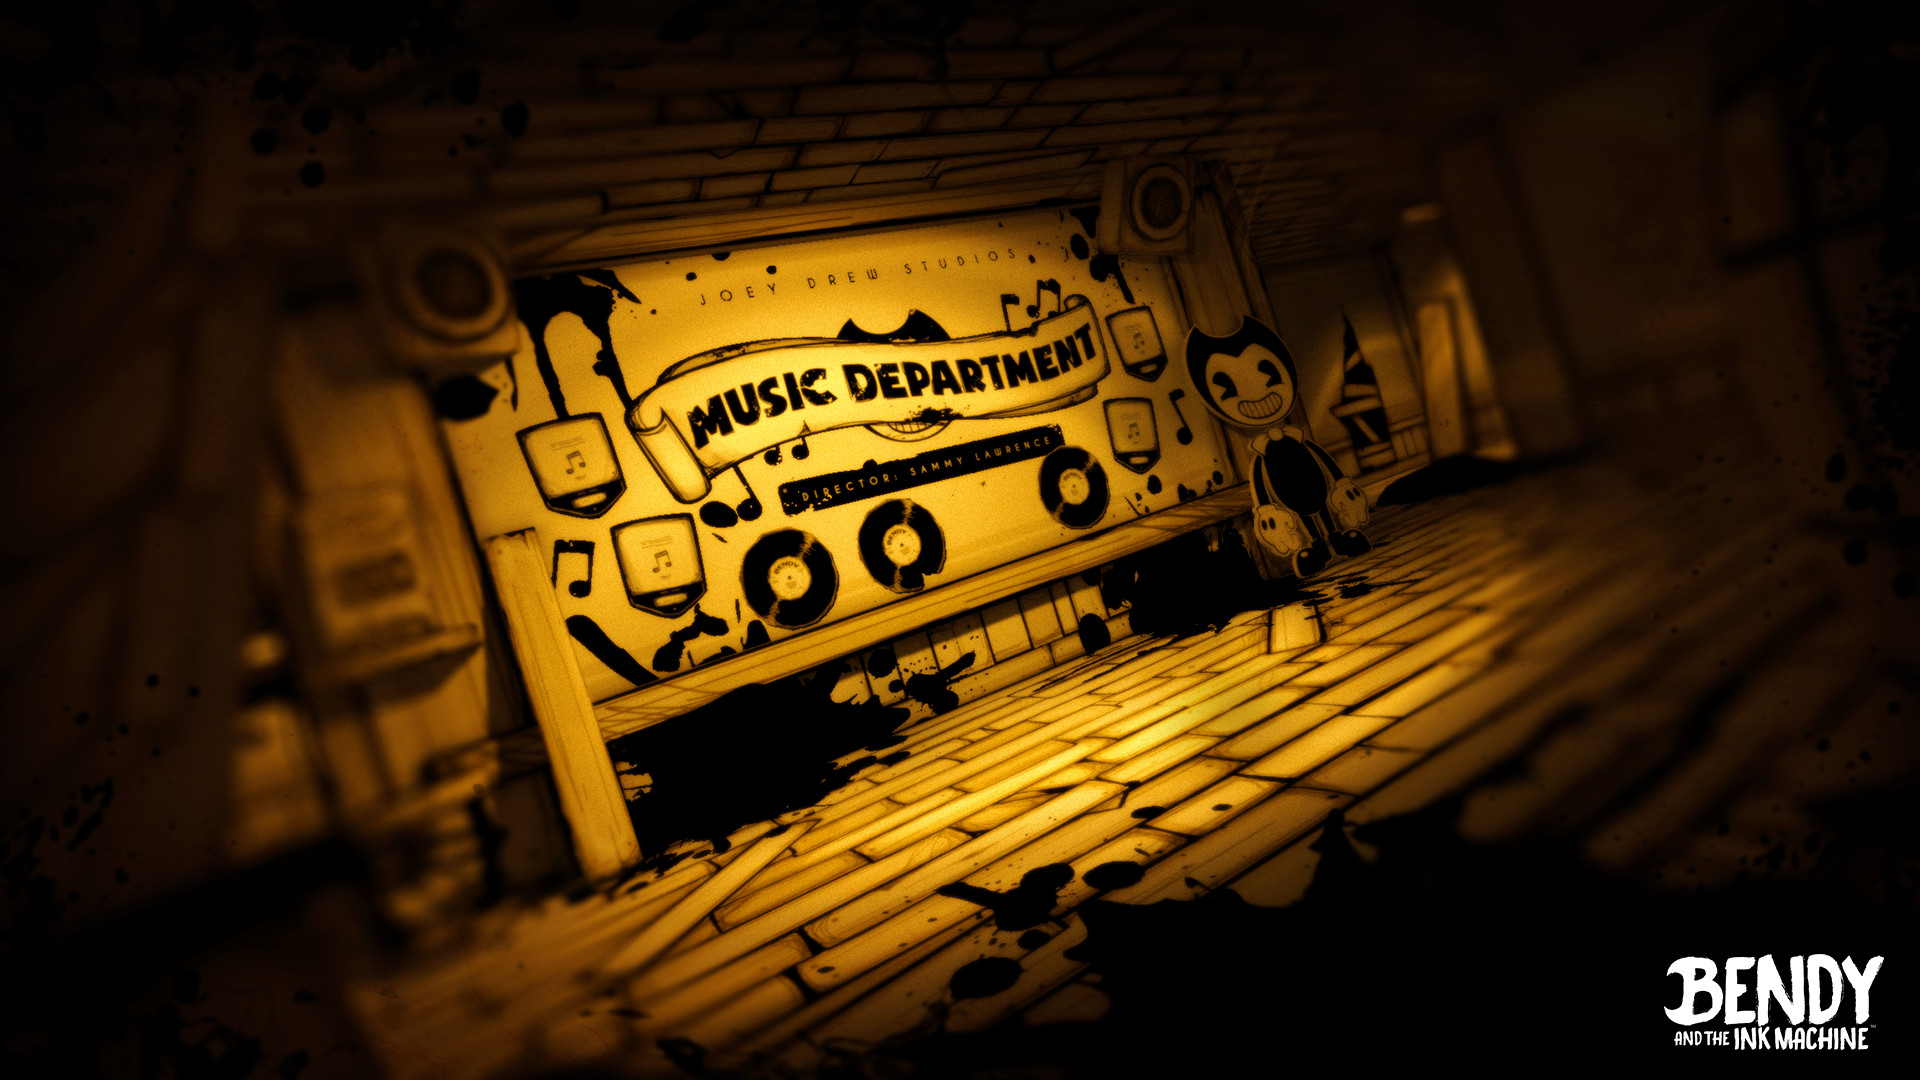 Steam Community Group Bendy And The Ink Machine